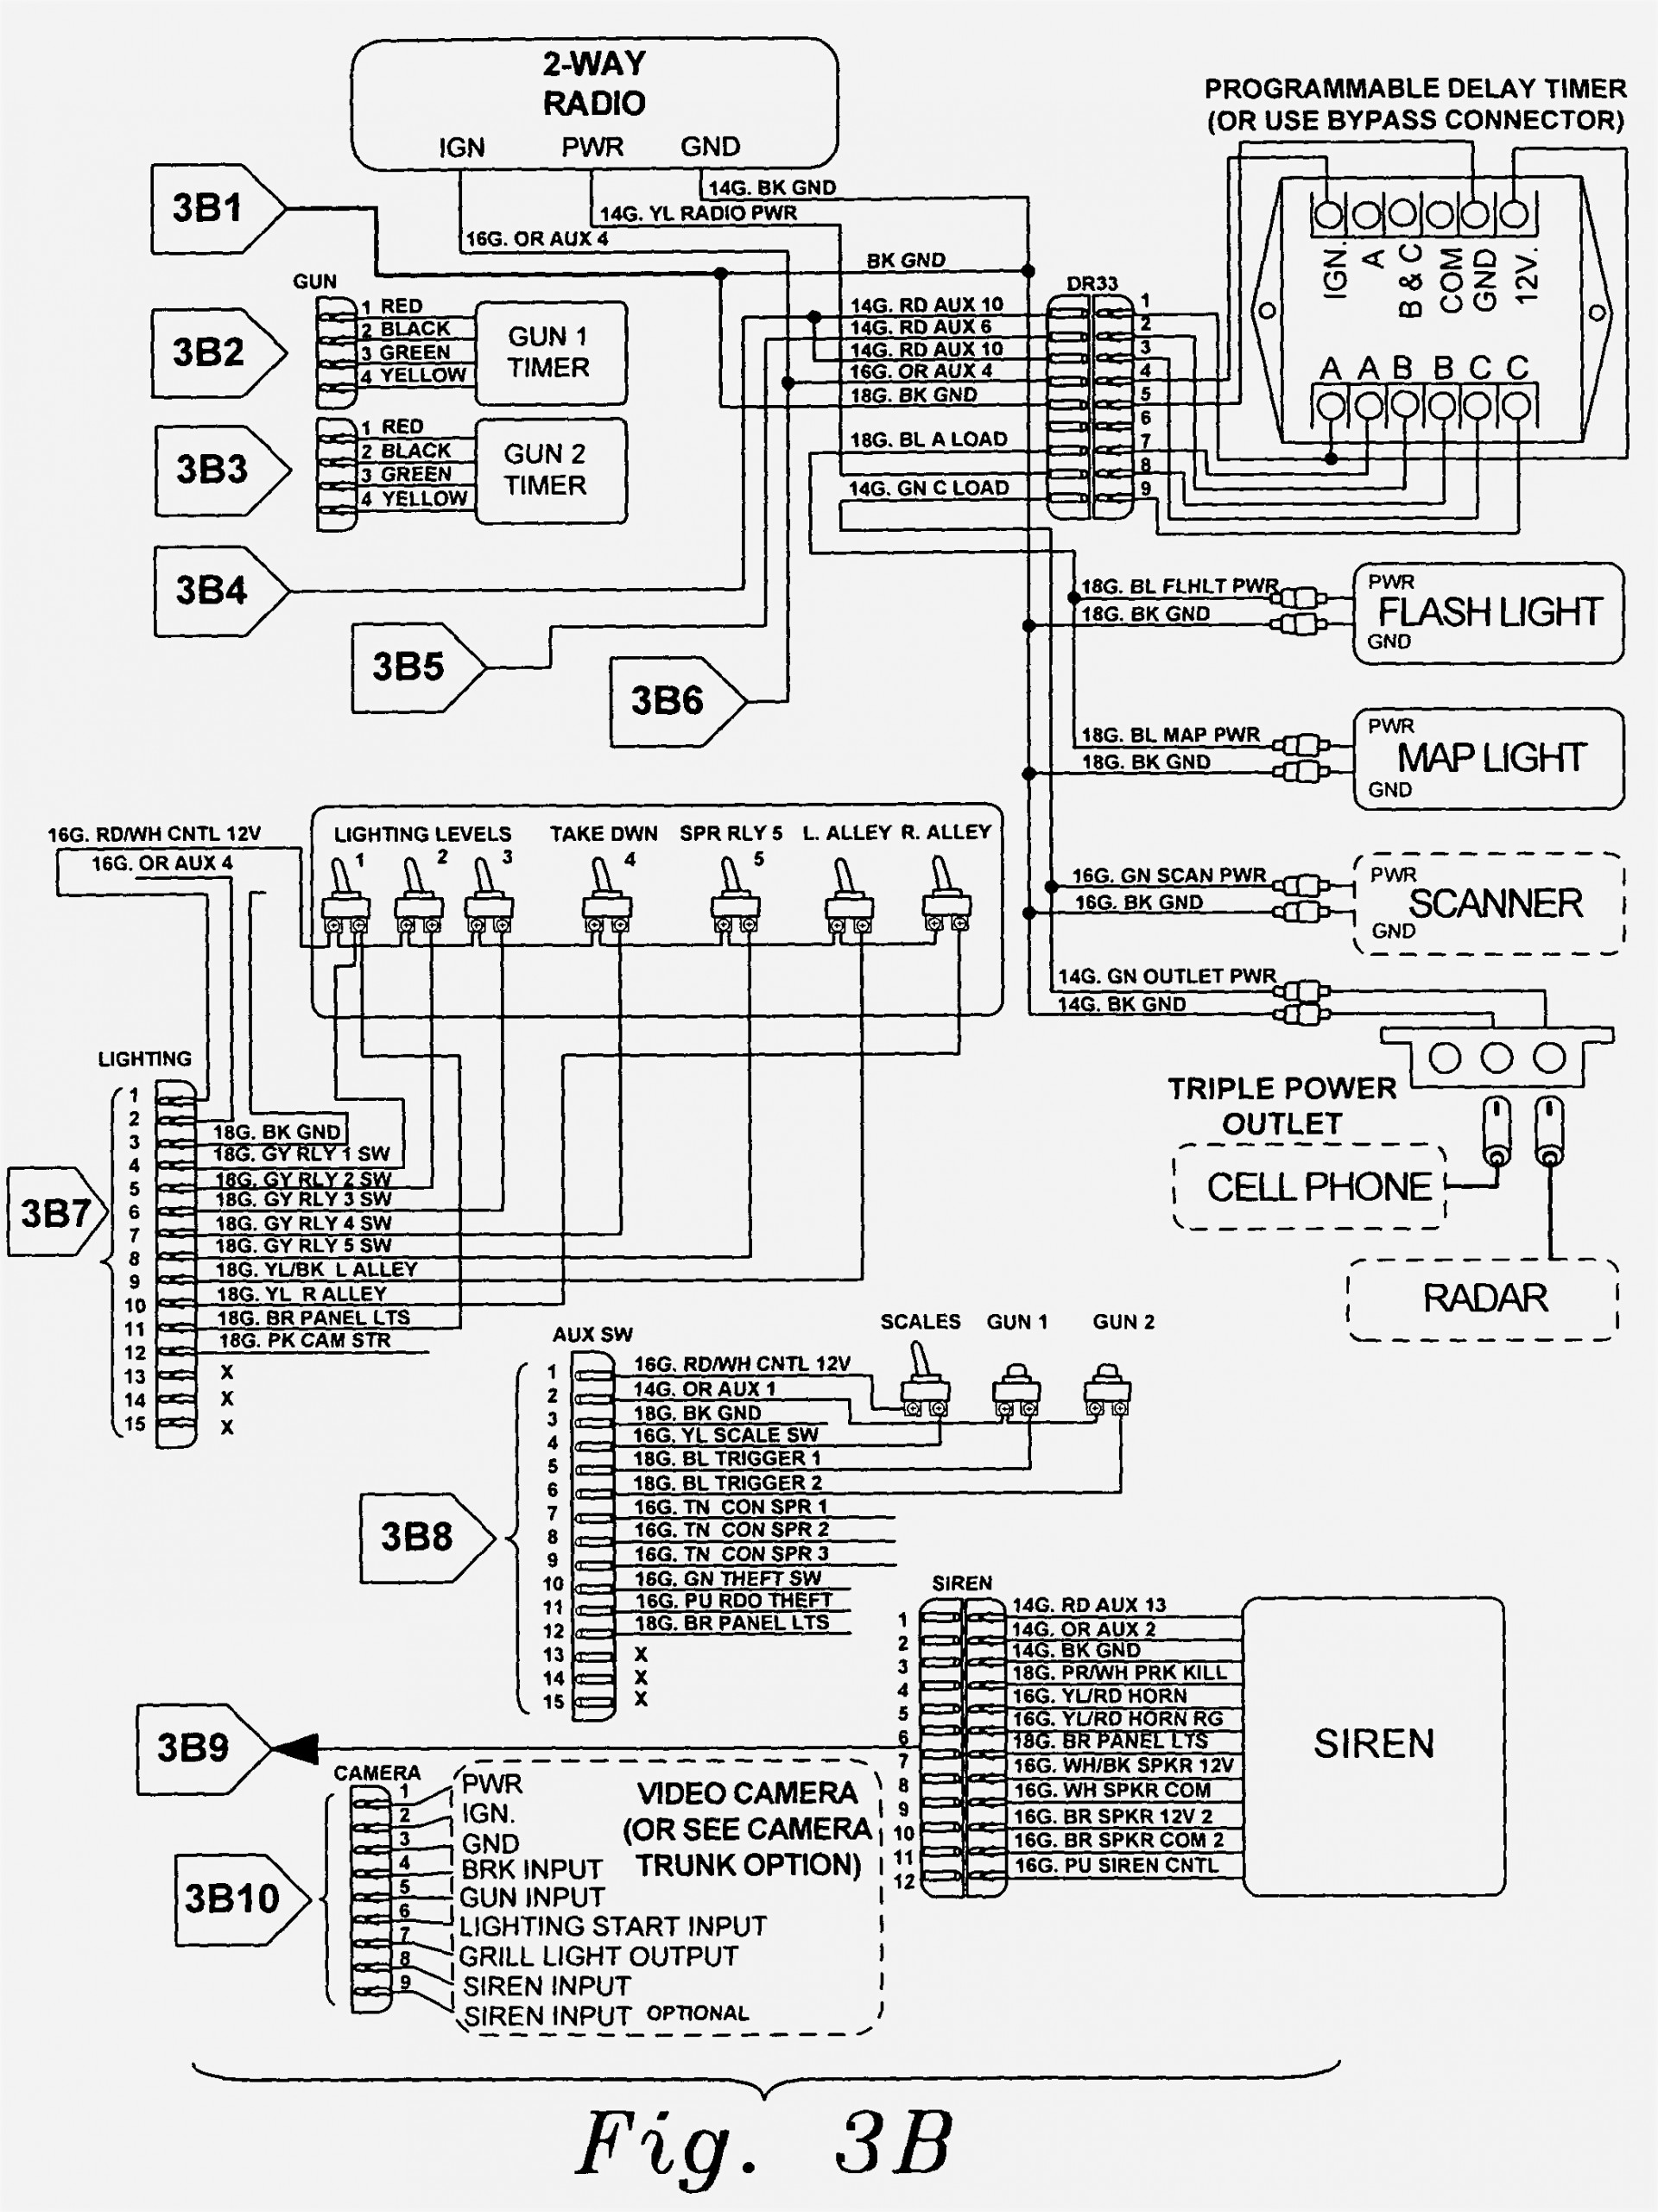 whelen siren wiring diagram unusual whelen 295slsa6 wiring diagram whelen gamma 2 wiring diagram siren wiring diagram unusual whelen related post